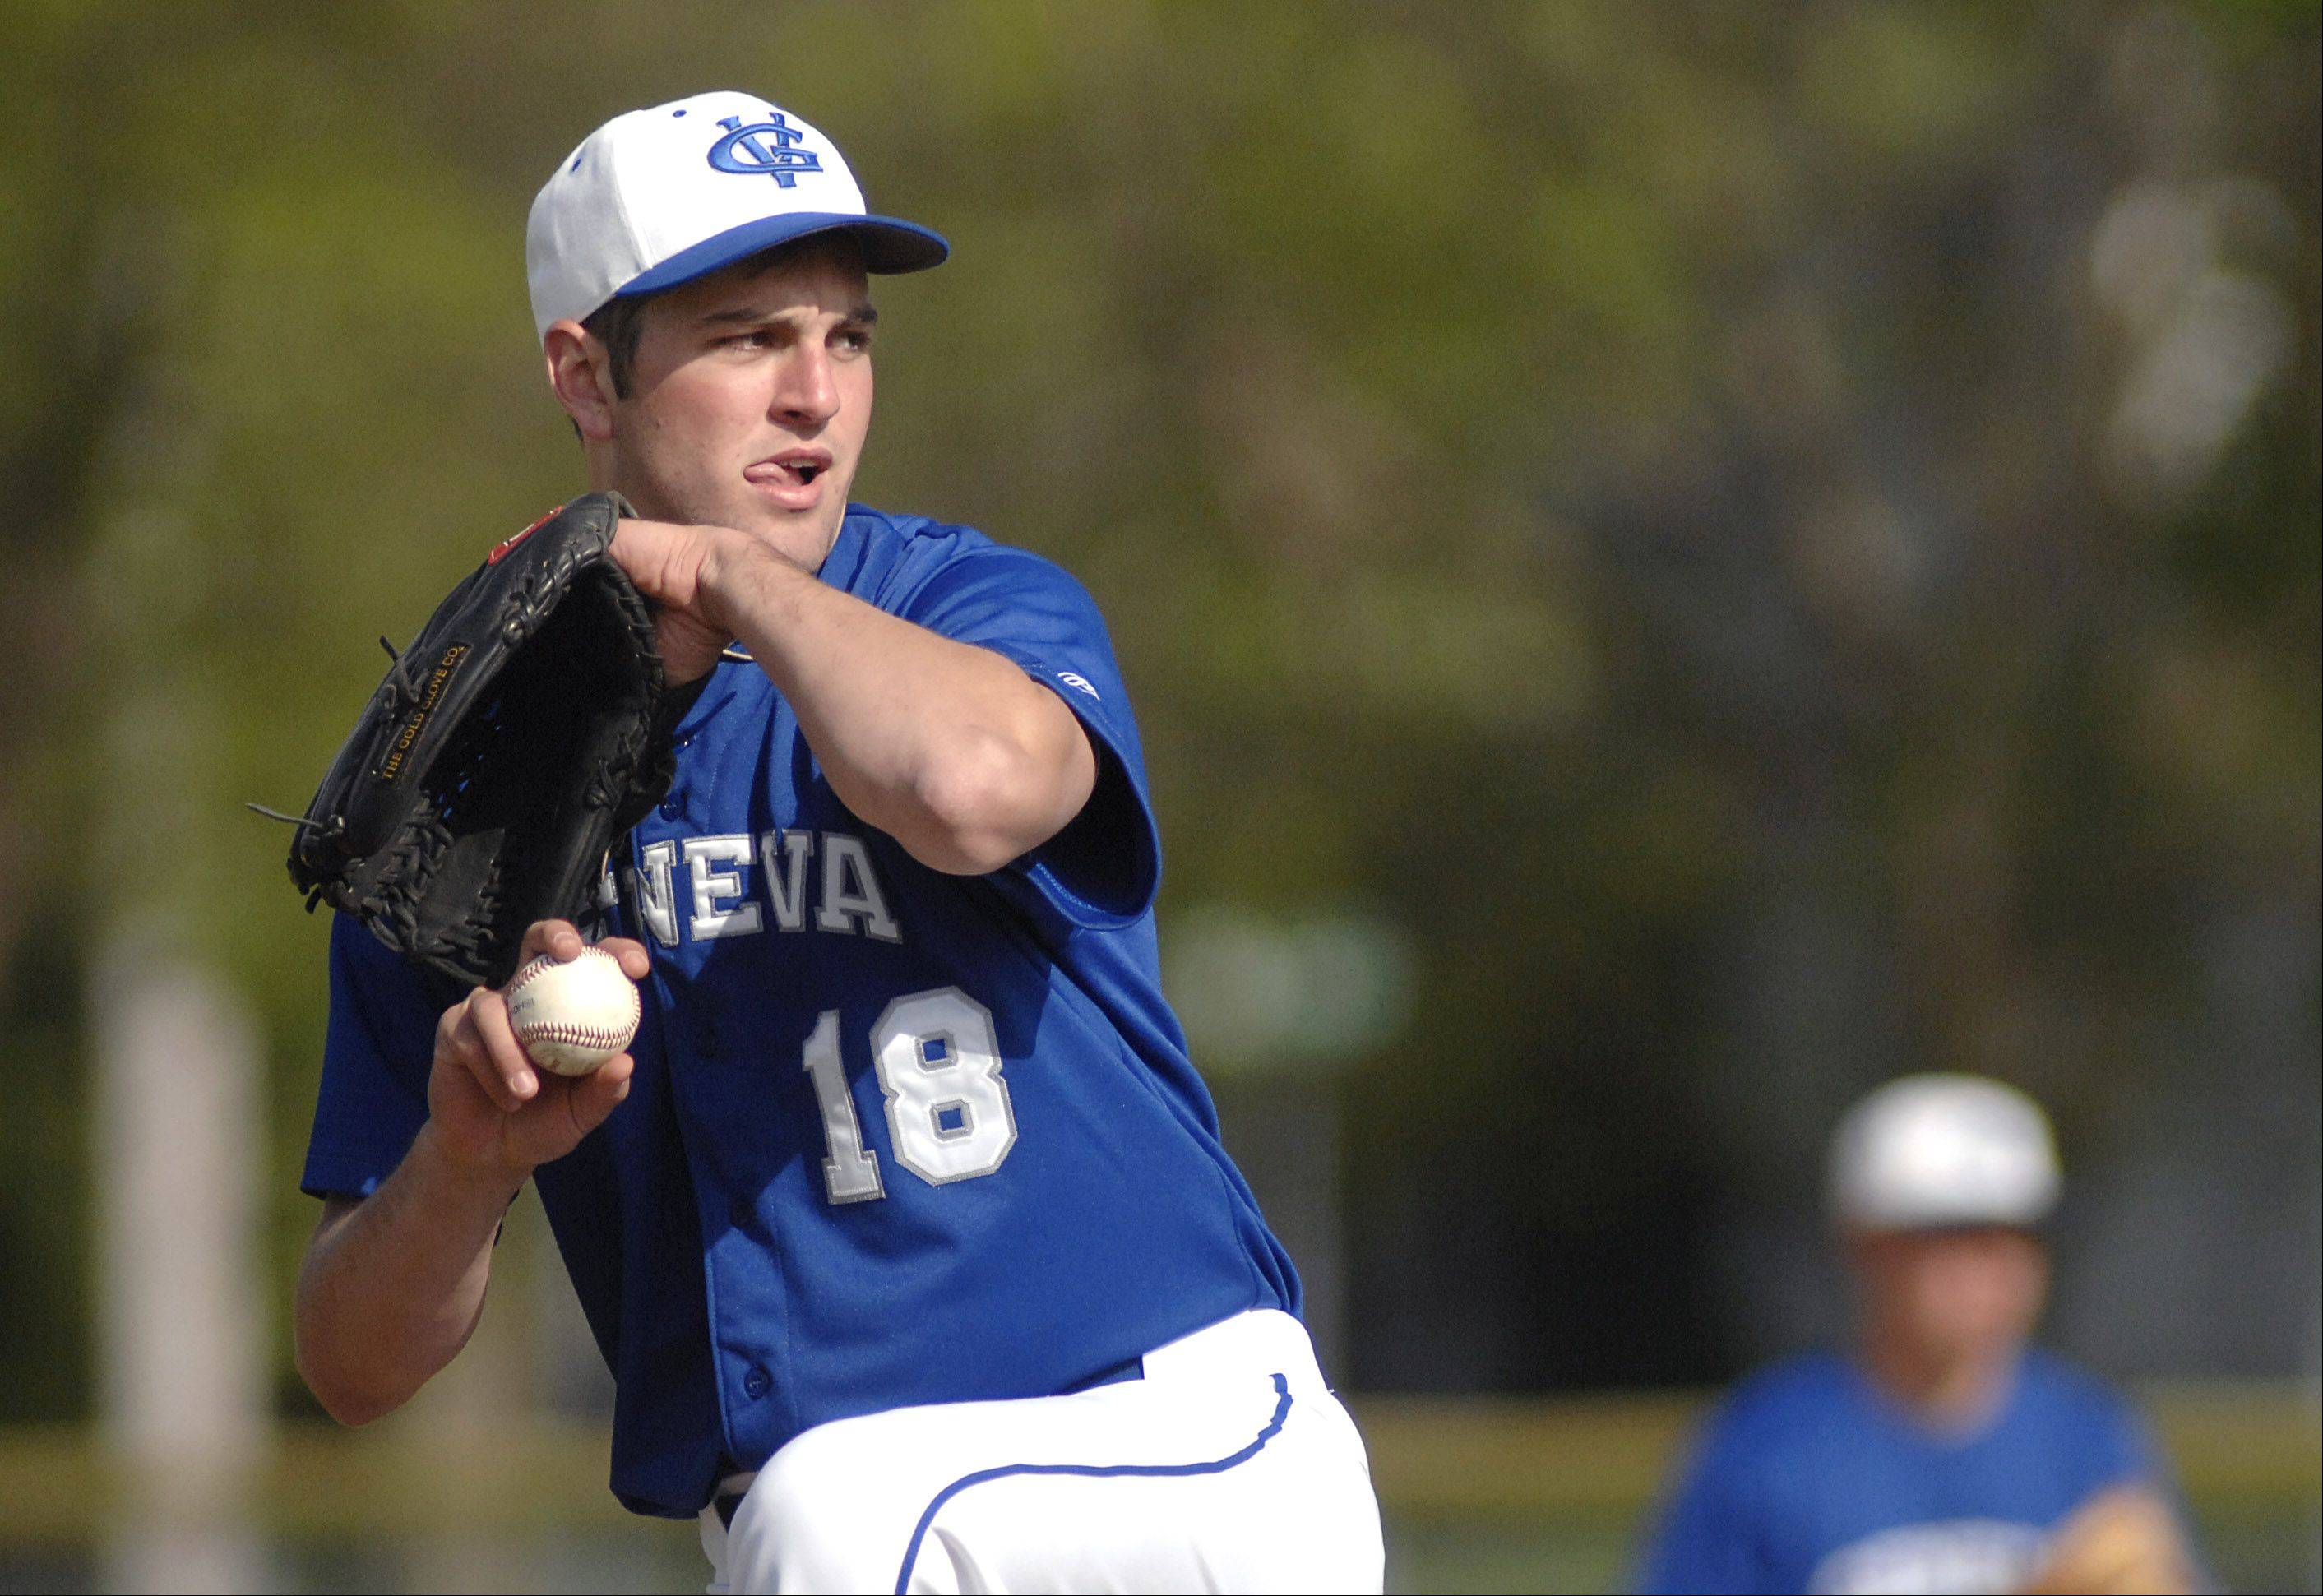 Geneva pitcher Drew White on Thursday, April 26.